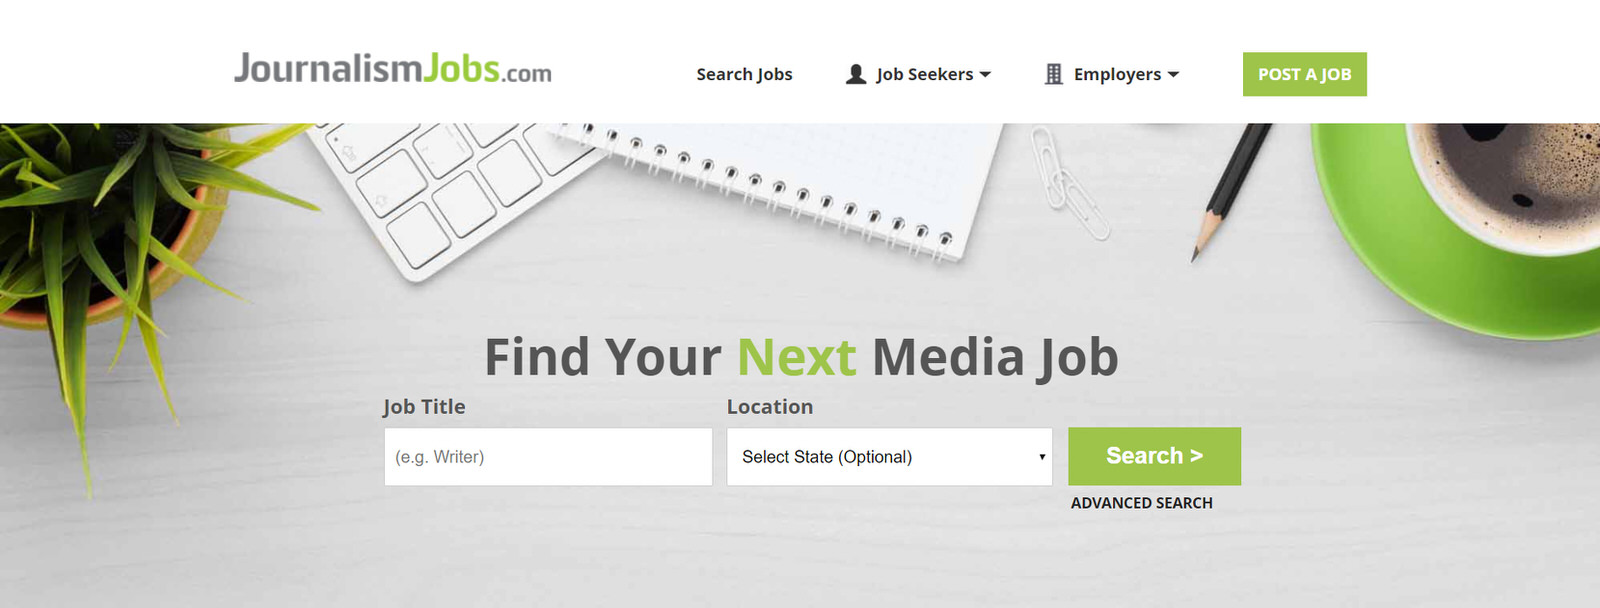 find photography jobs on journalism jobs